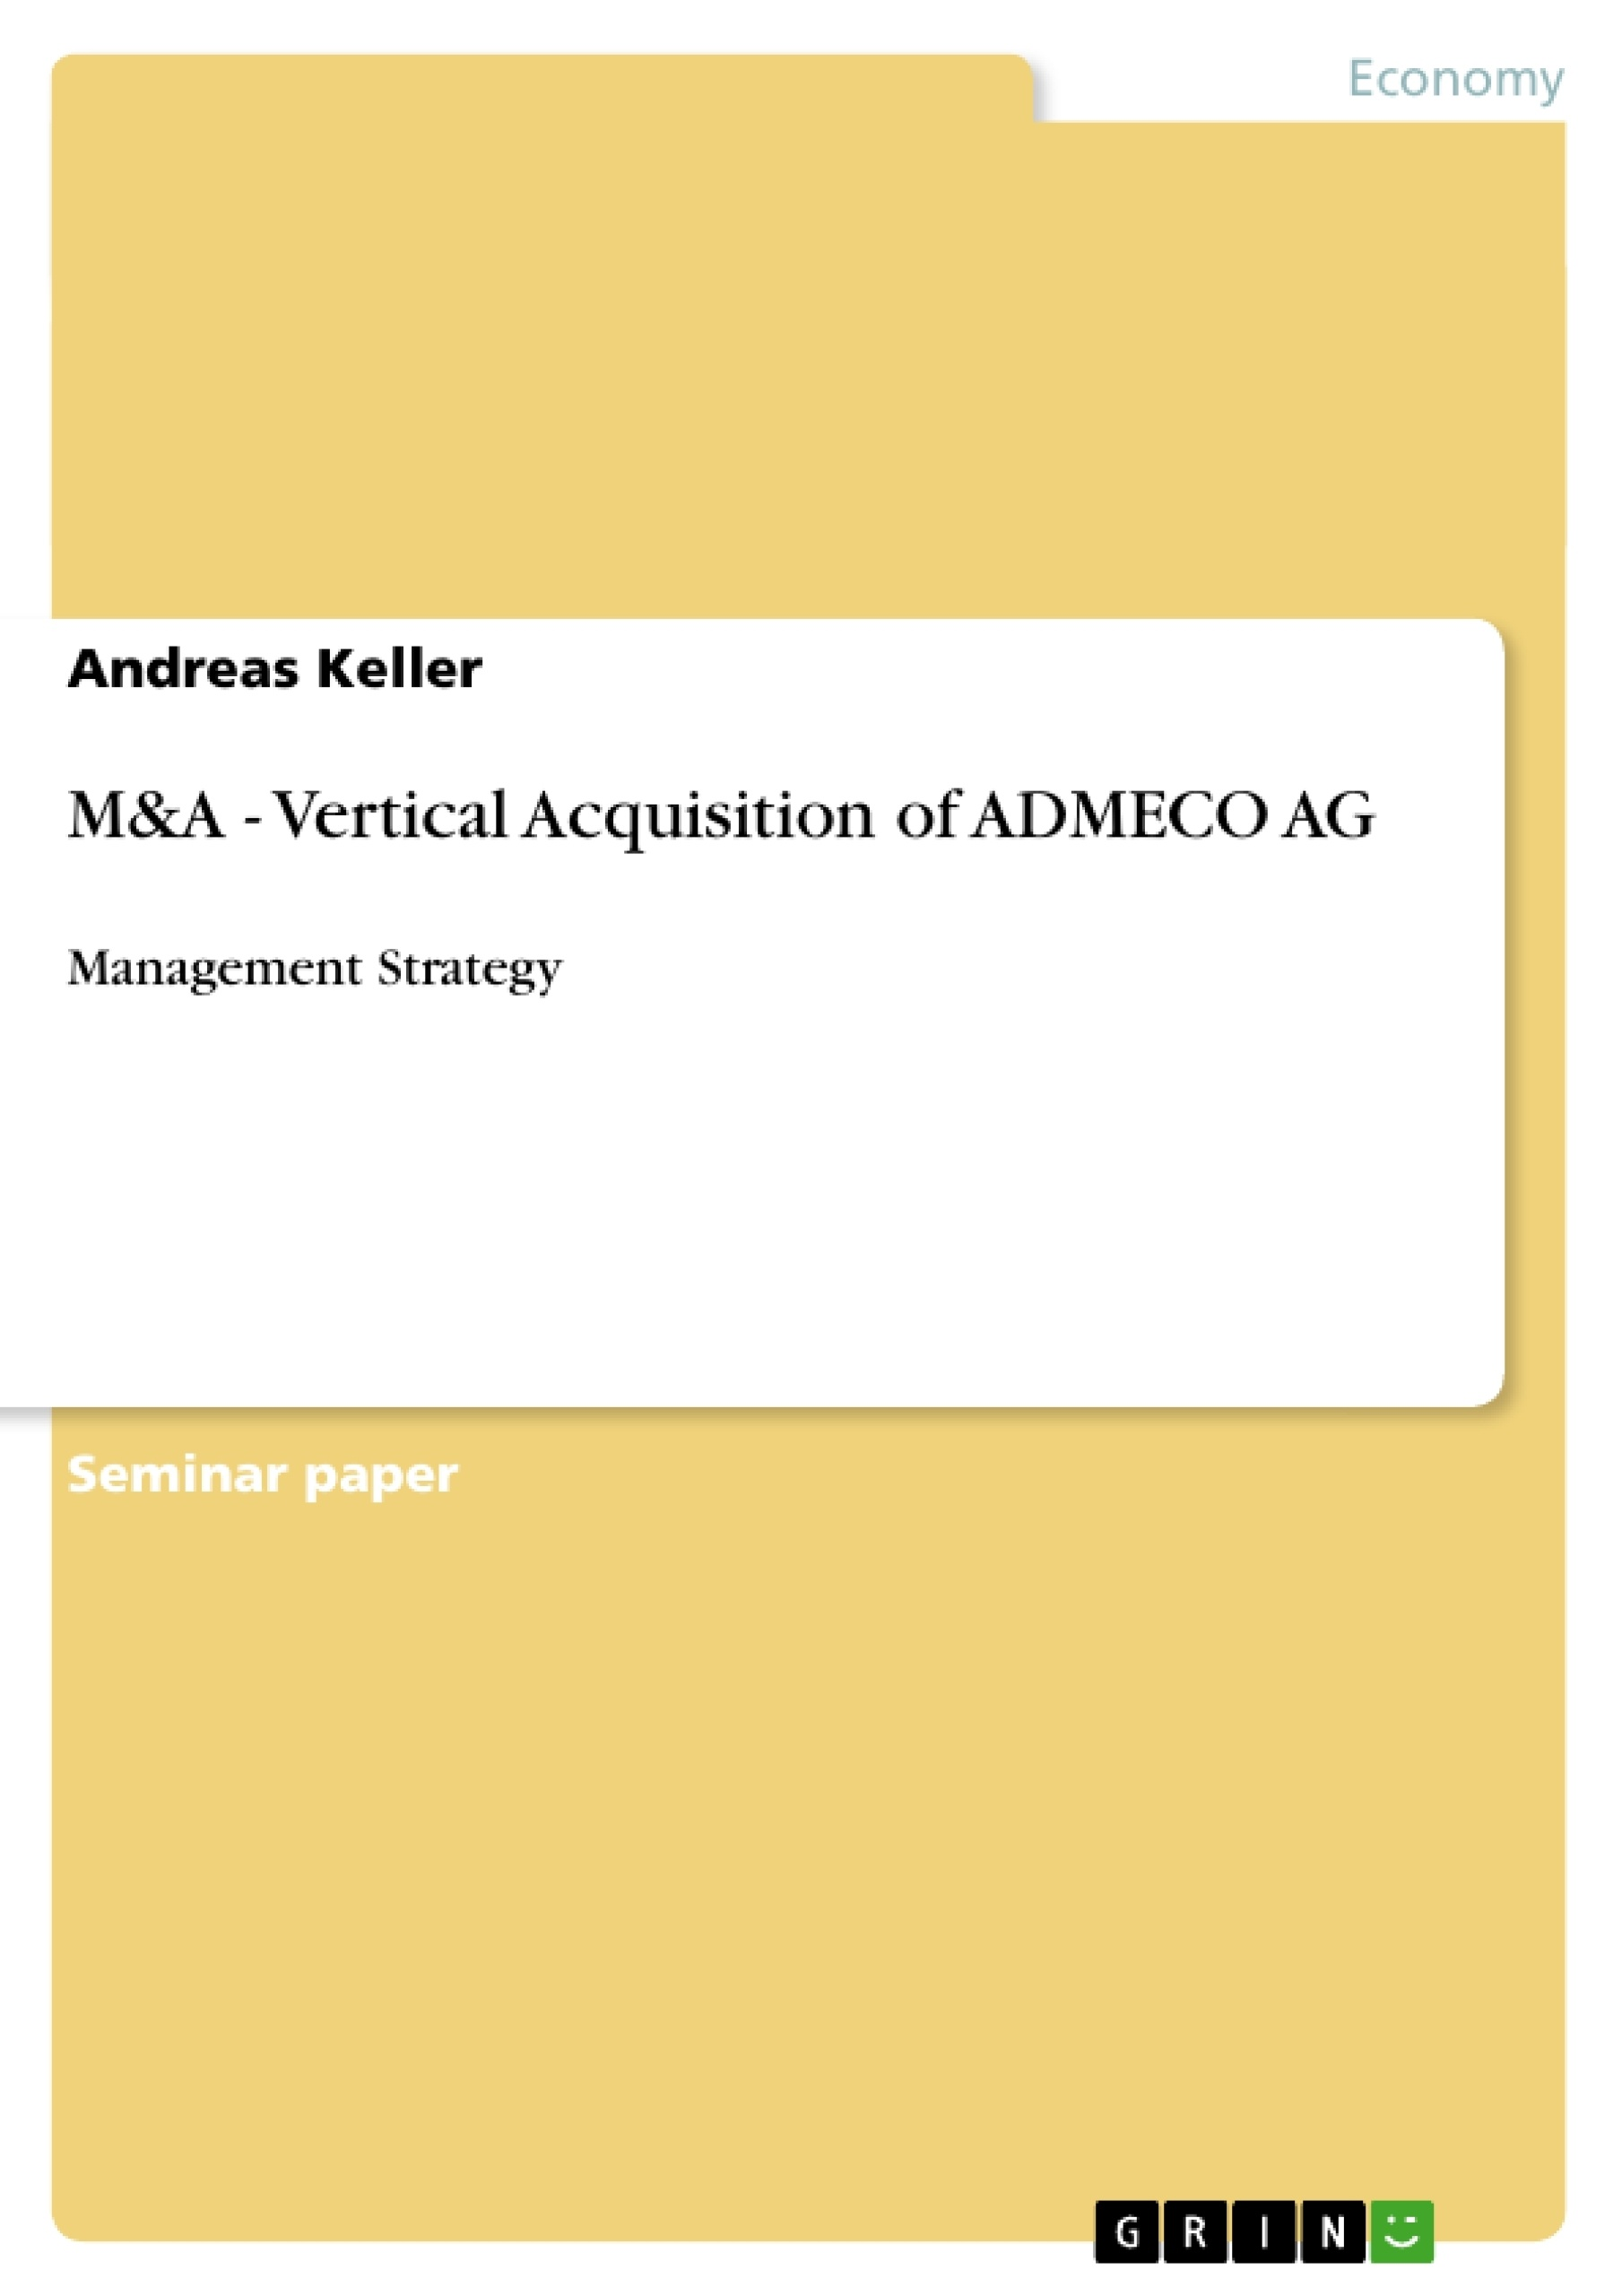 Title: M&A - Vertical Acquisition of ADMECO AG